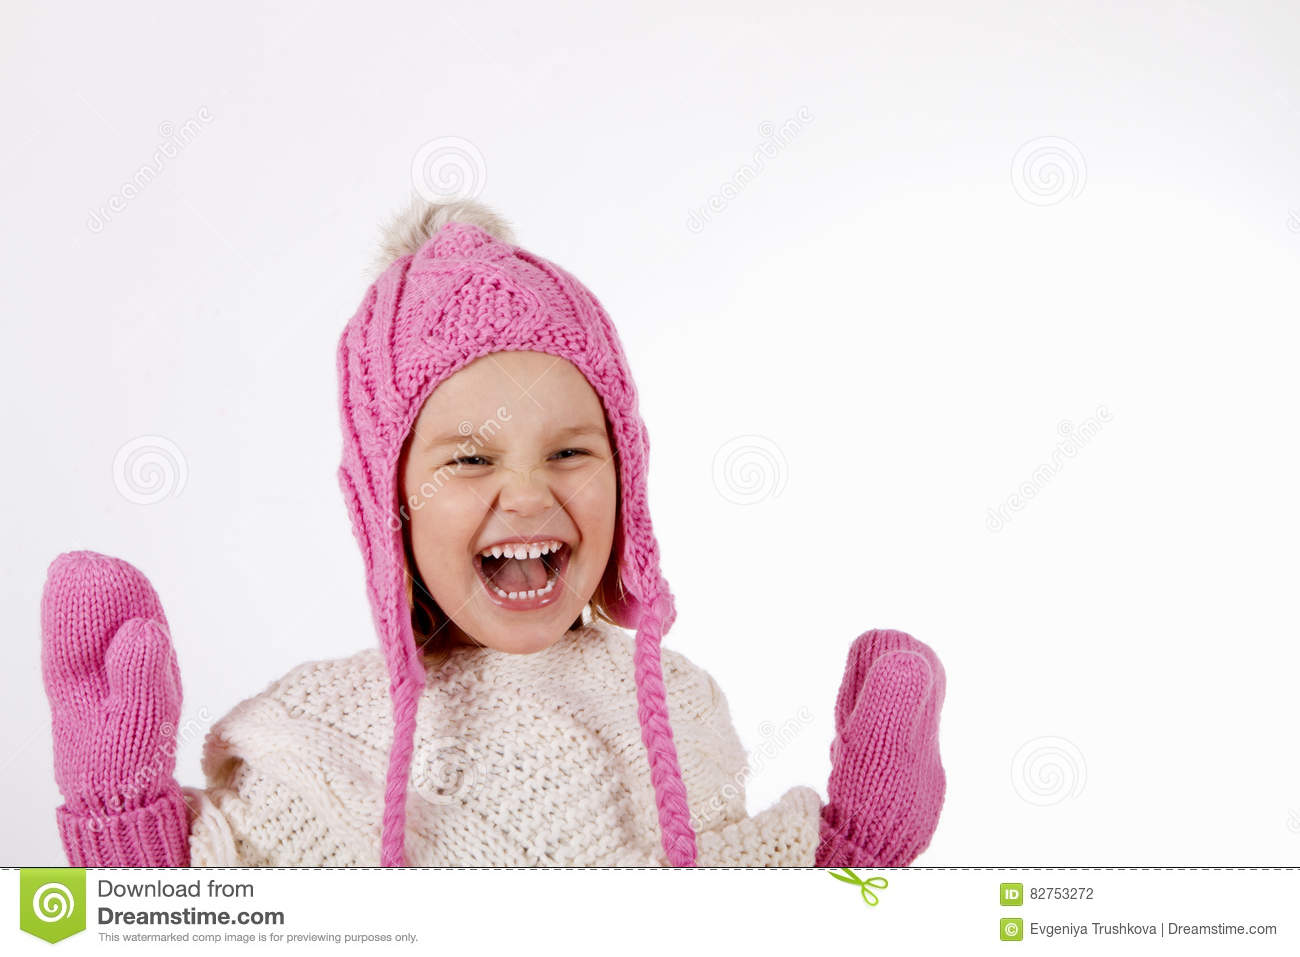 Girl in a knitted hat and mittens.